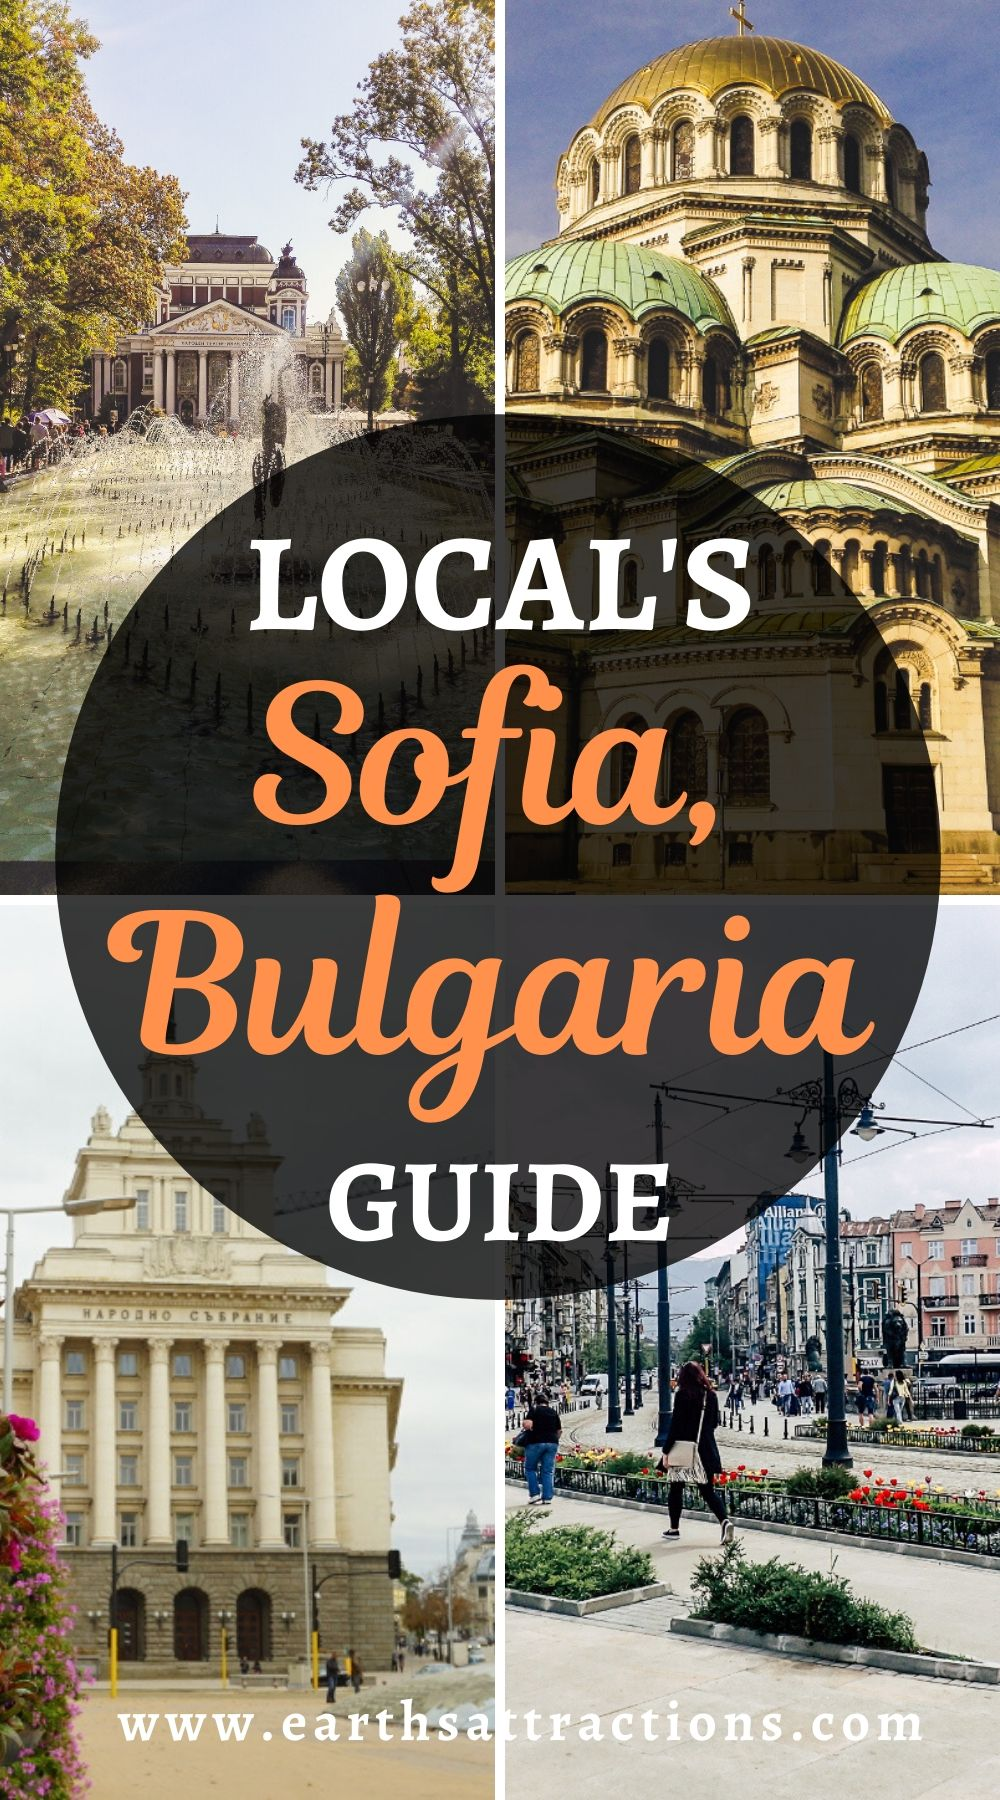 The ultimate local's guide to Sofia, Bulgaria. Discover the best things to do in Sofia, wonderful Sofia restaurants, cool Sofia hotels for all budgets, and special off the beaten path things to do in Sofia. Add some Sofia travel tips and you have everything you need to know about visiting Sofia. Create your Sofia bucketlist and the ultimate Sofia itinerary usinf this insider's guide to Sofia, Bulgaria. #sofia #bulgaria #travelguides #traveltips #europe #travel #earthsattractions